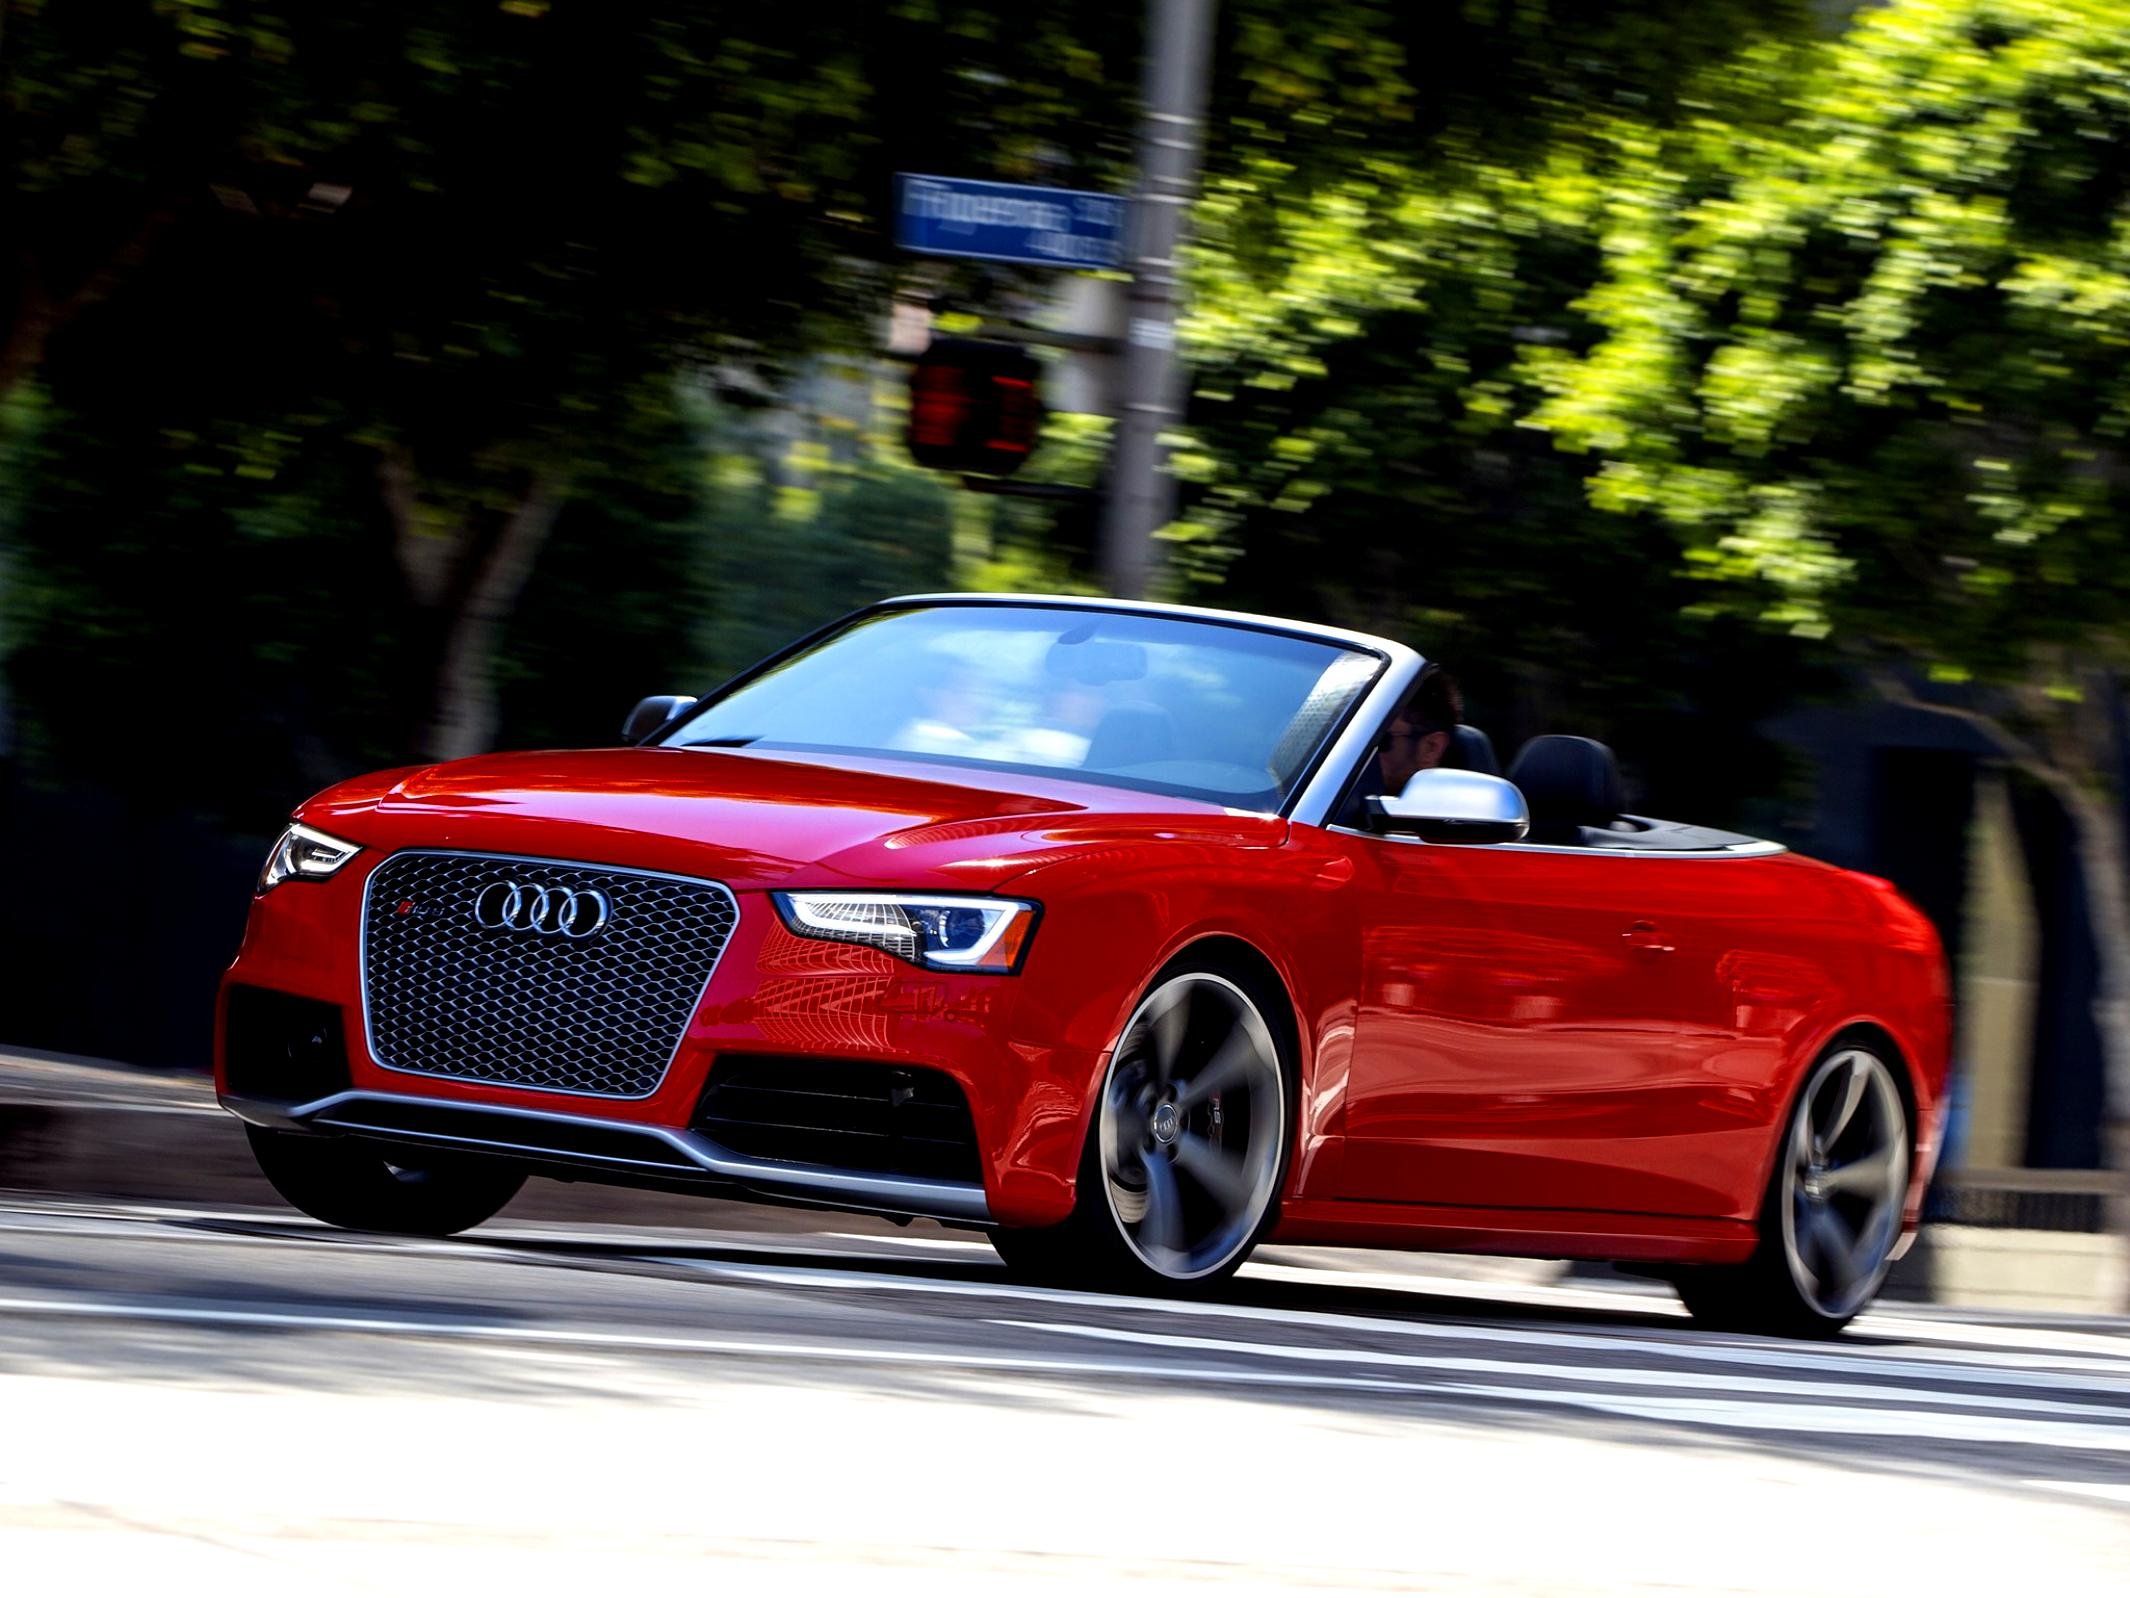 Audi RS5 Cabriolet 2013 #82